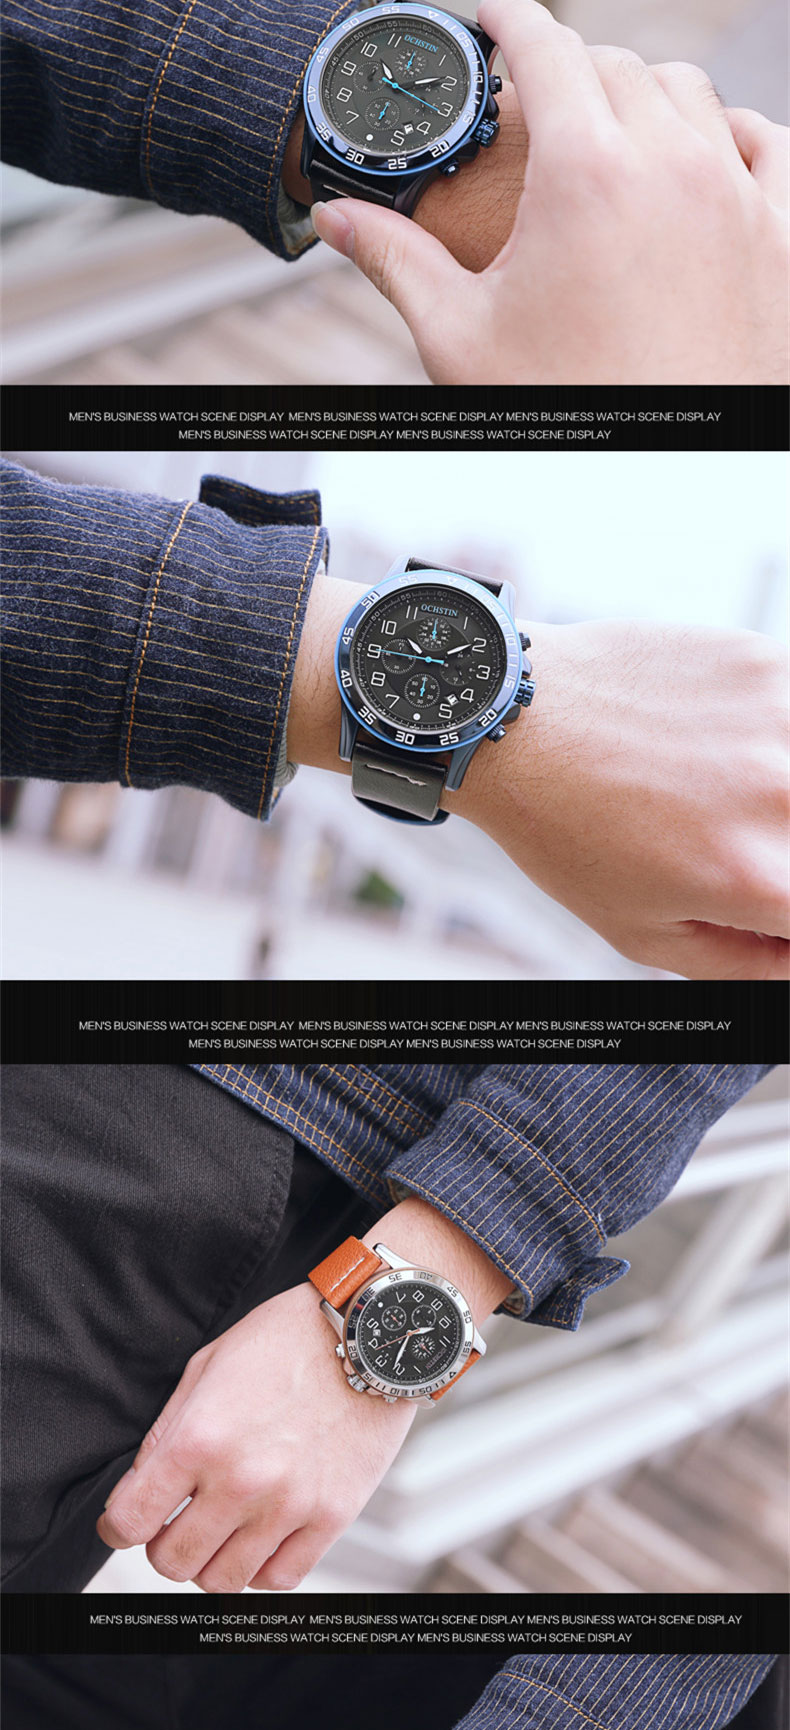 17 Men Watches Luxury Top Brand OCHSTIN Sports Chronograph Fashion Male Dress Leather Belt Clock Waterproof Quartz Wrist Watch 8